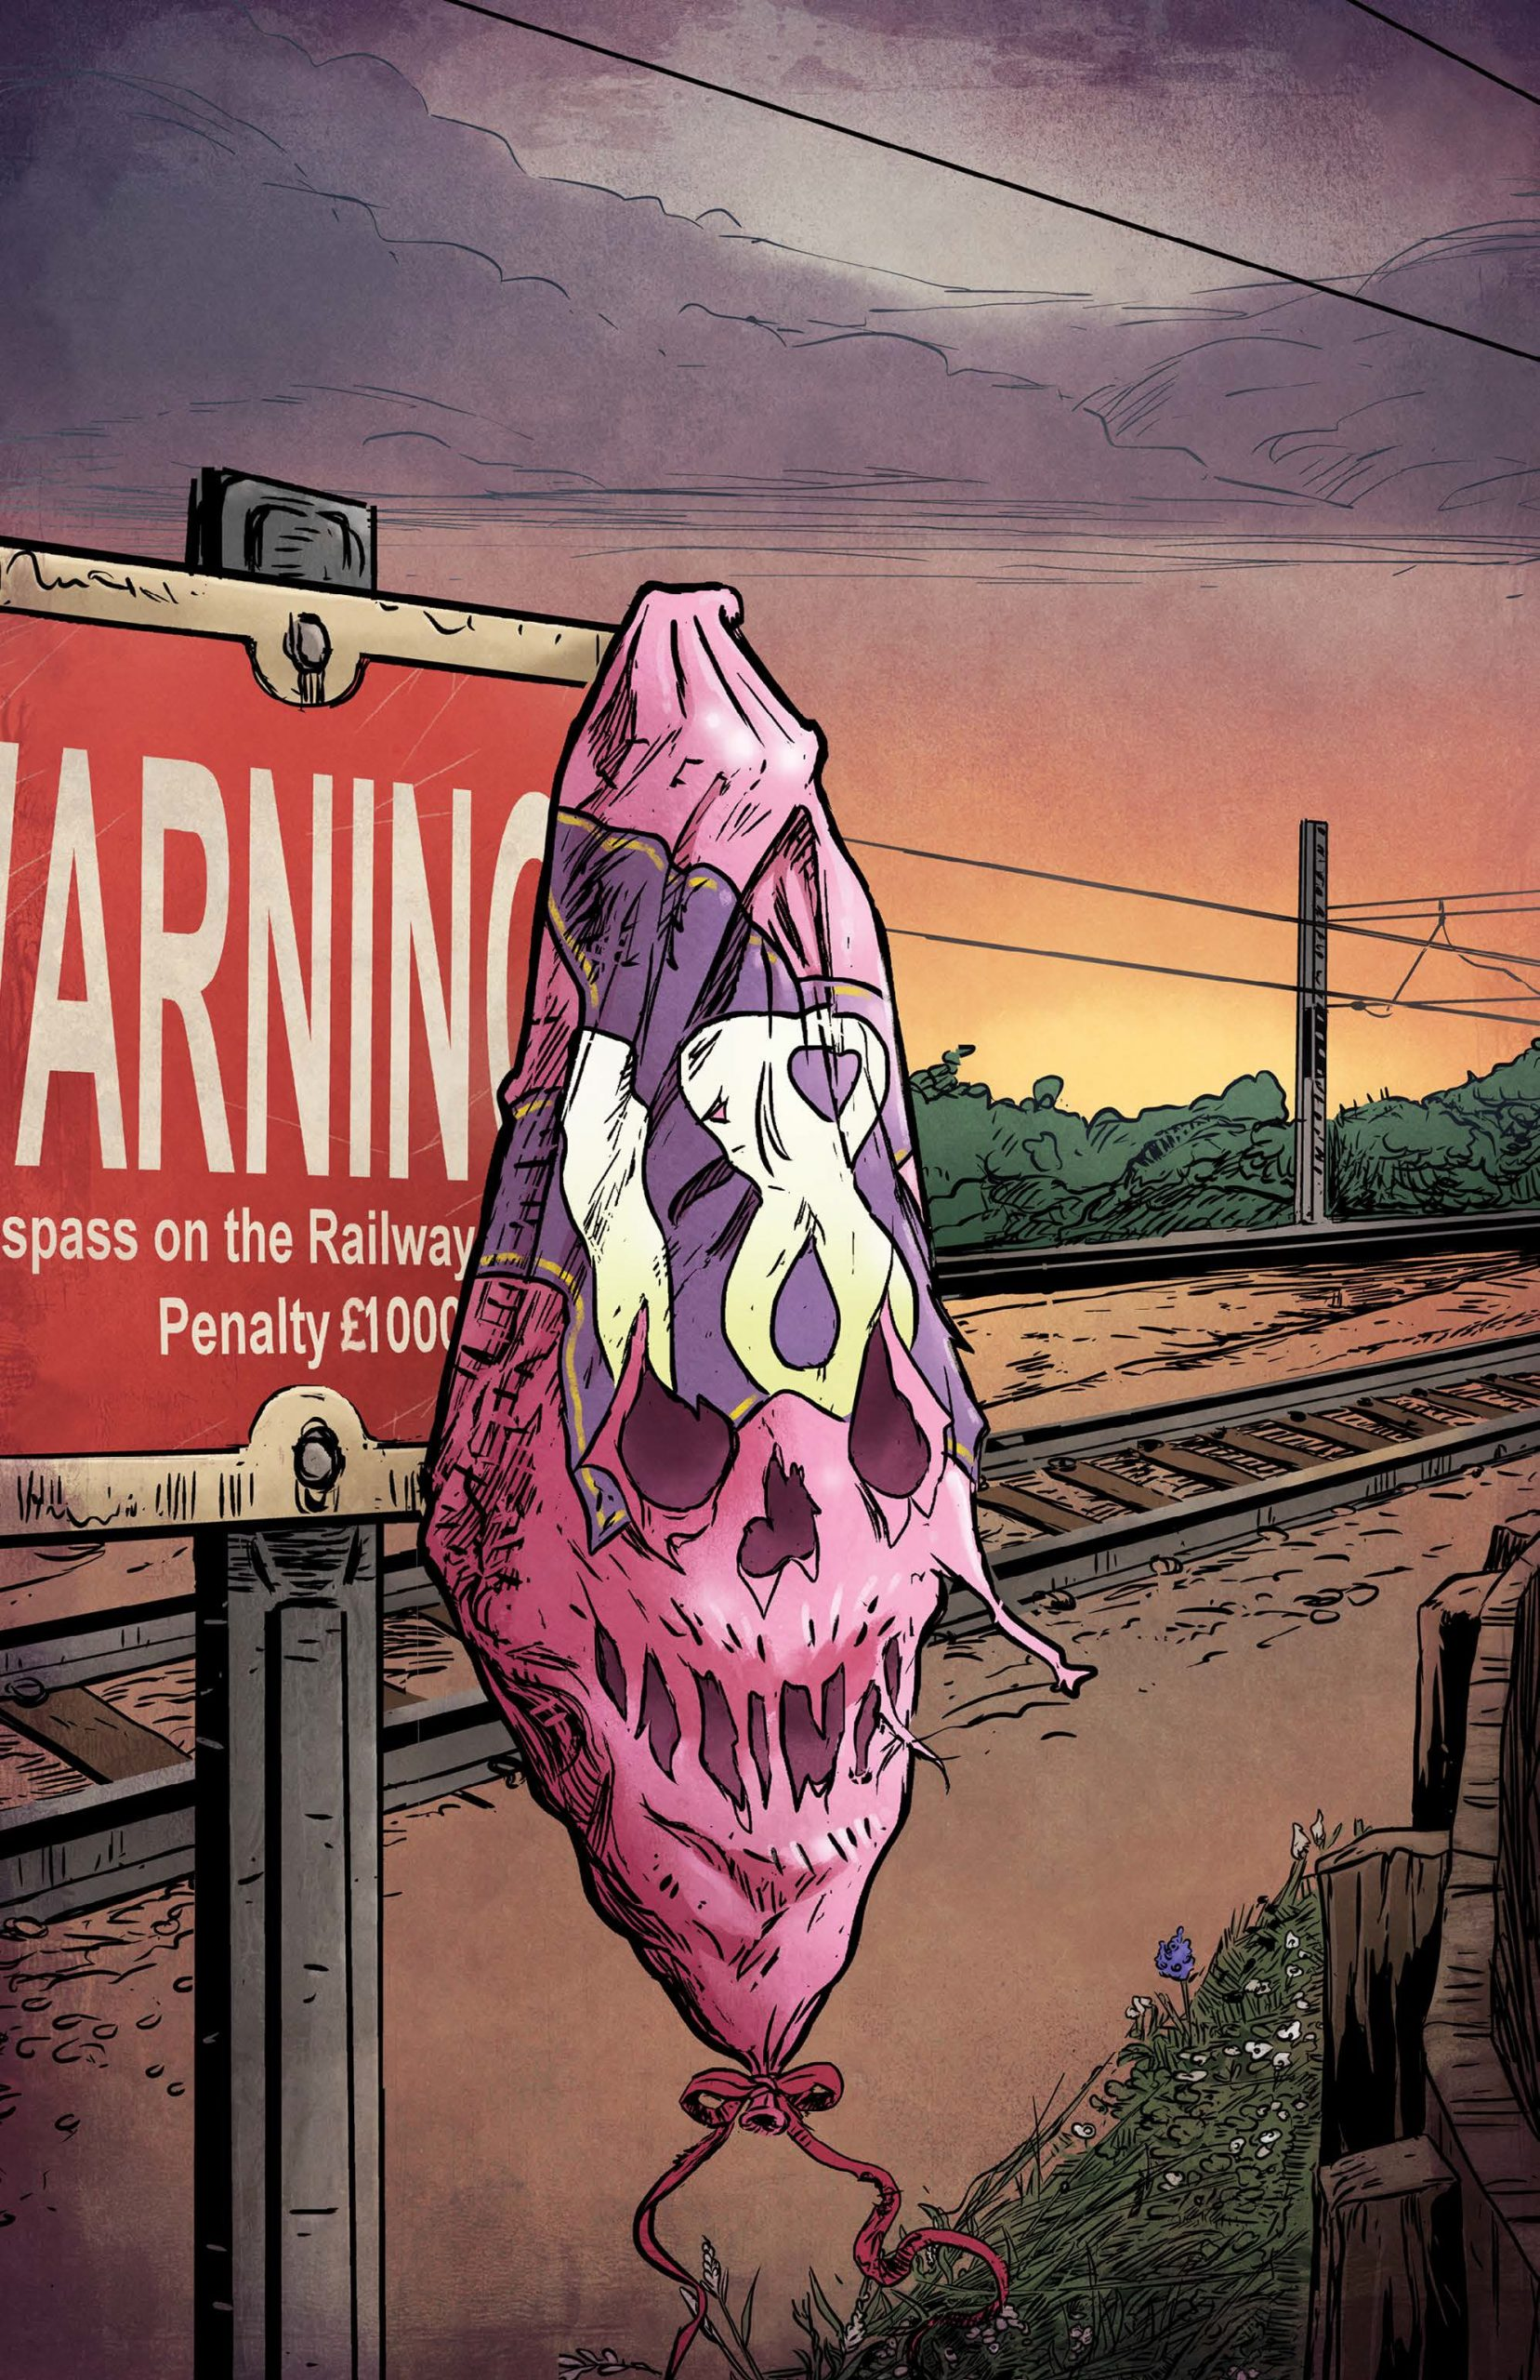 A comic book telling of a central character's 18th birthday, highlighting the dangers of trespassing on electrified railways